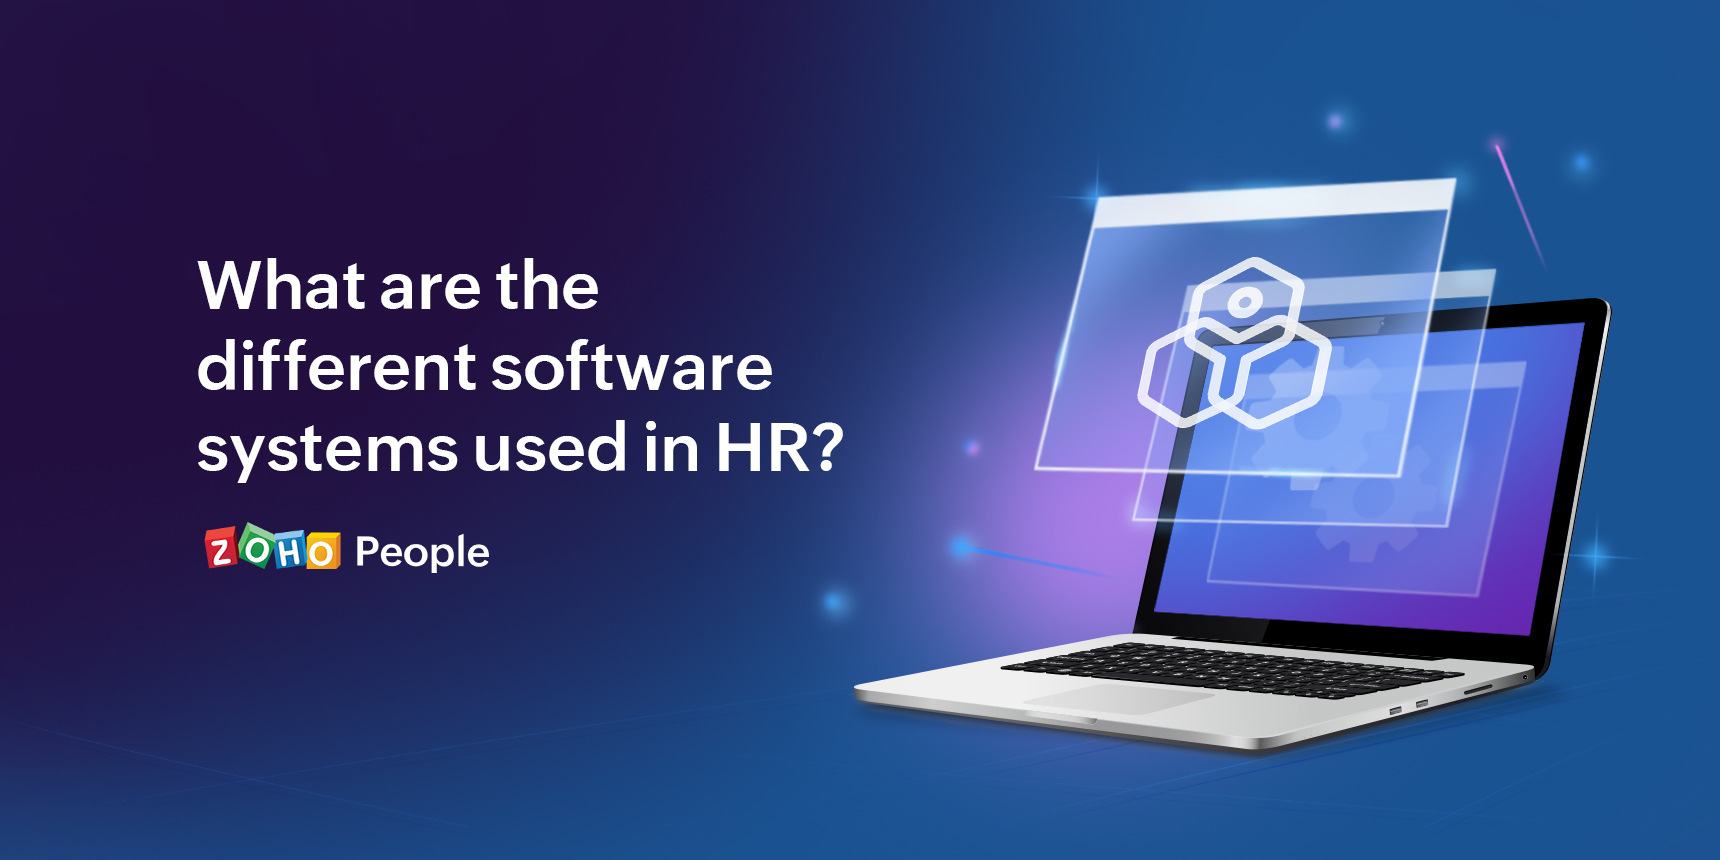 Different software systems used in HR professionals